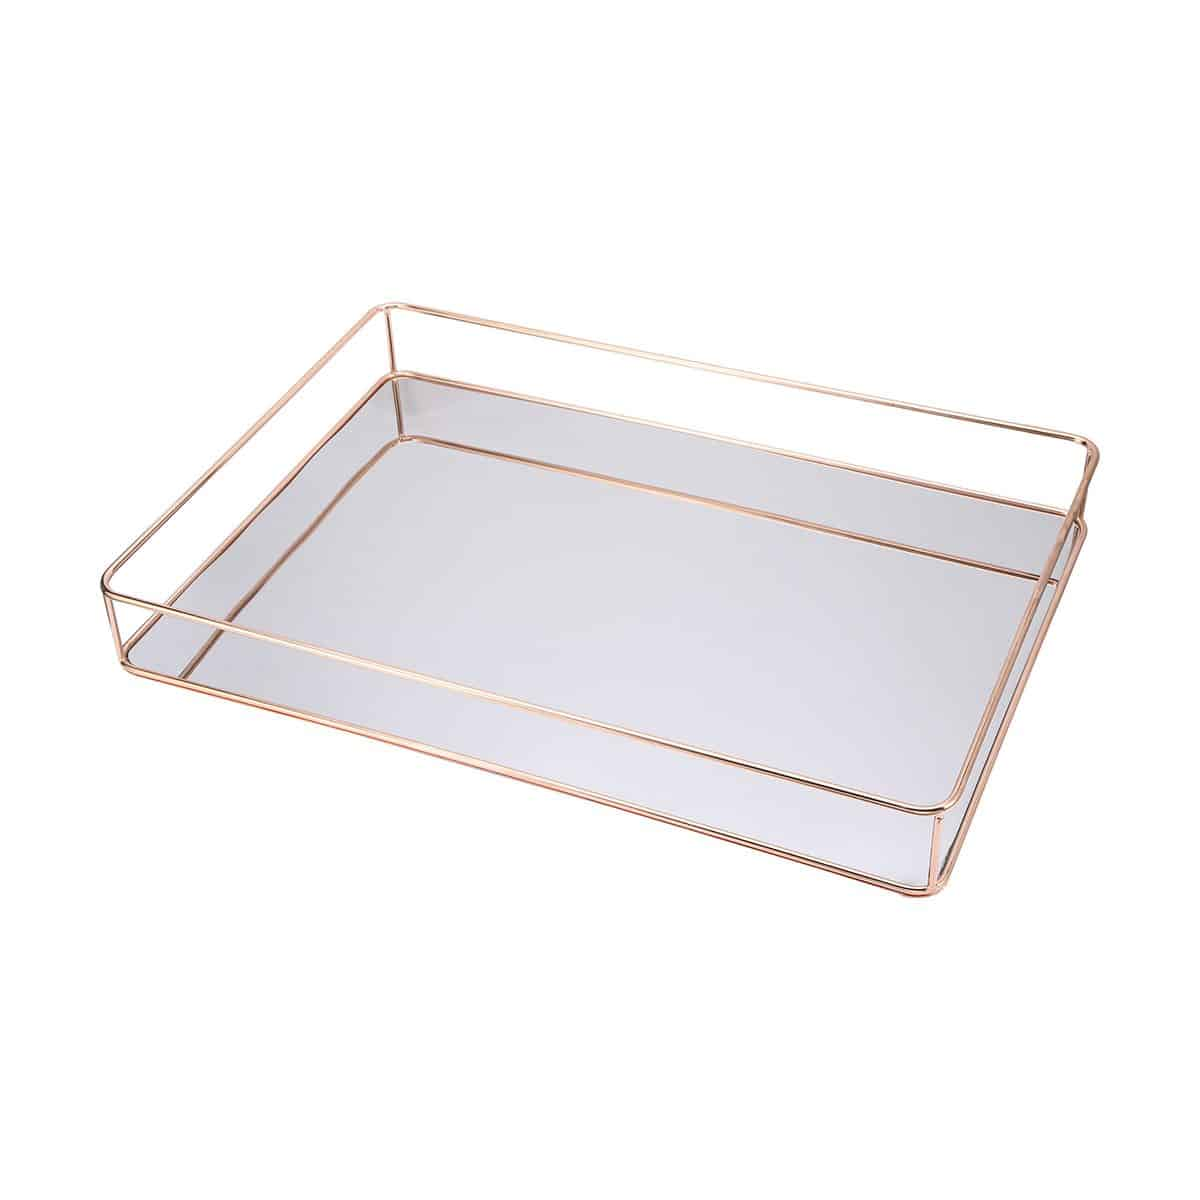 Gold mirror serving tray - 1 available